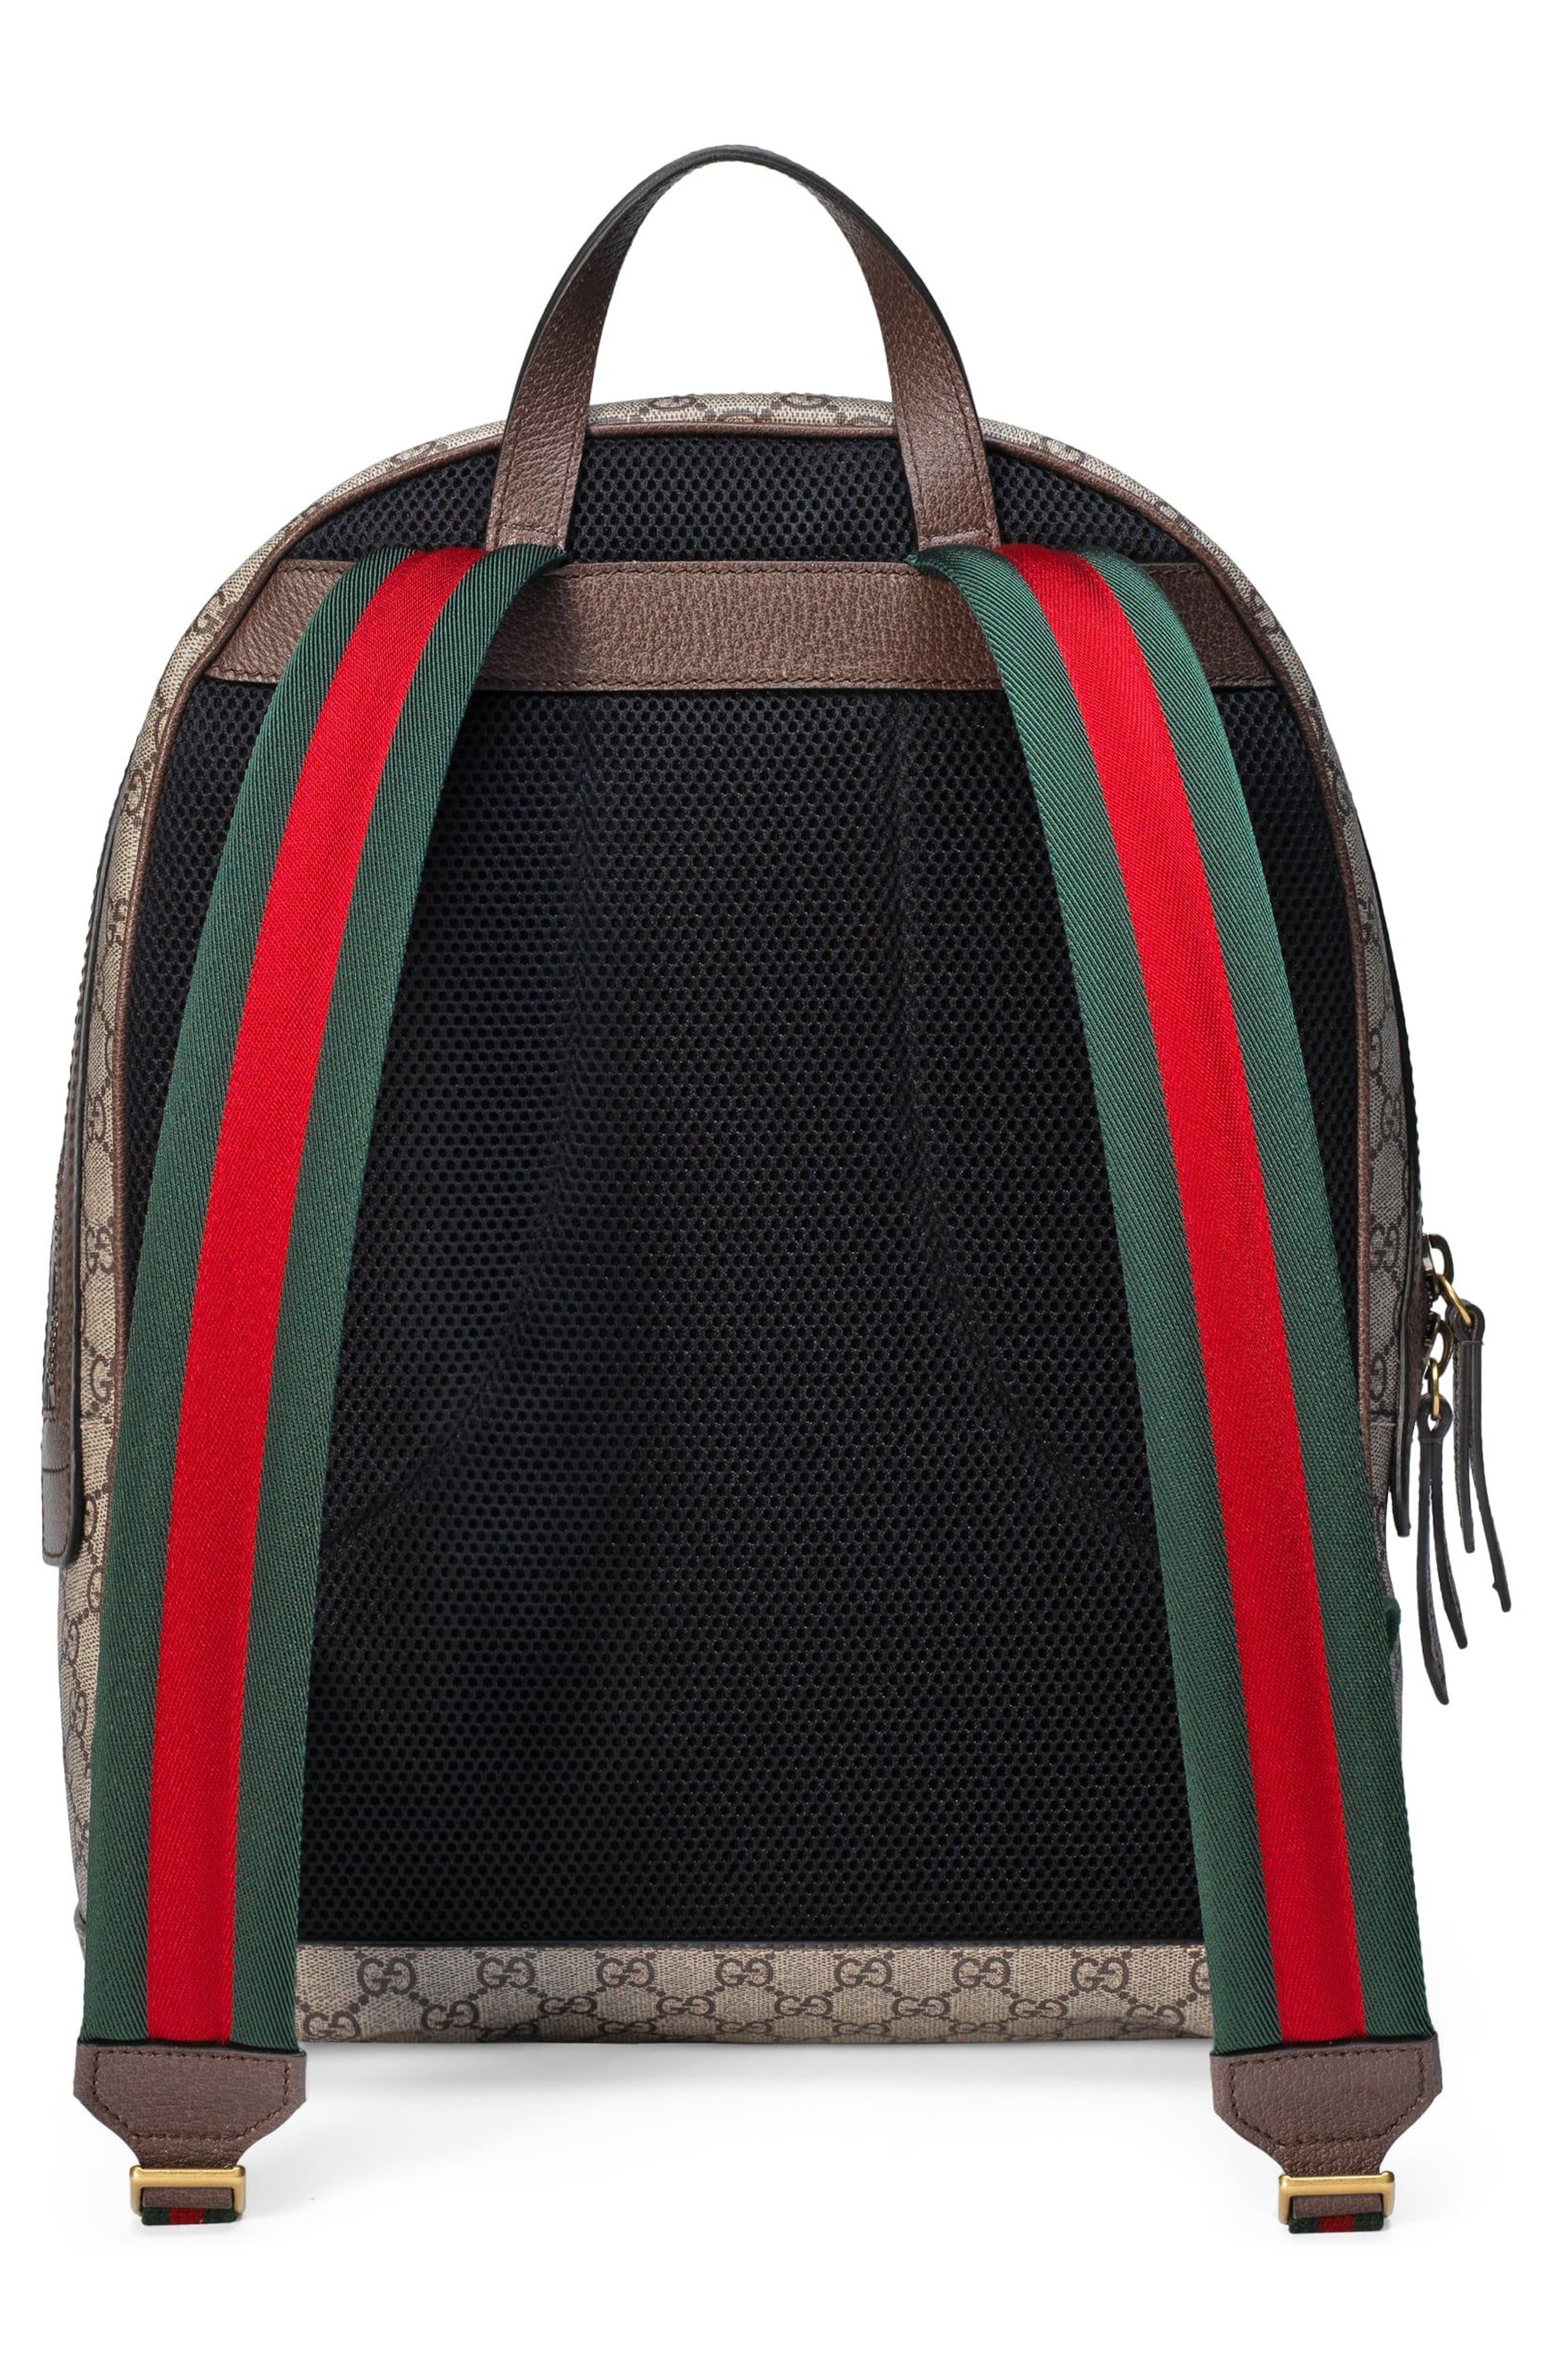 Insect Print GG Supreme Canvas Backpack,                             Alternate thumbnail 2, color,                             161